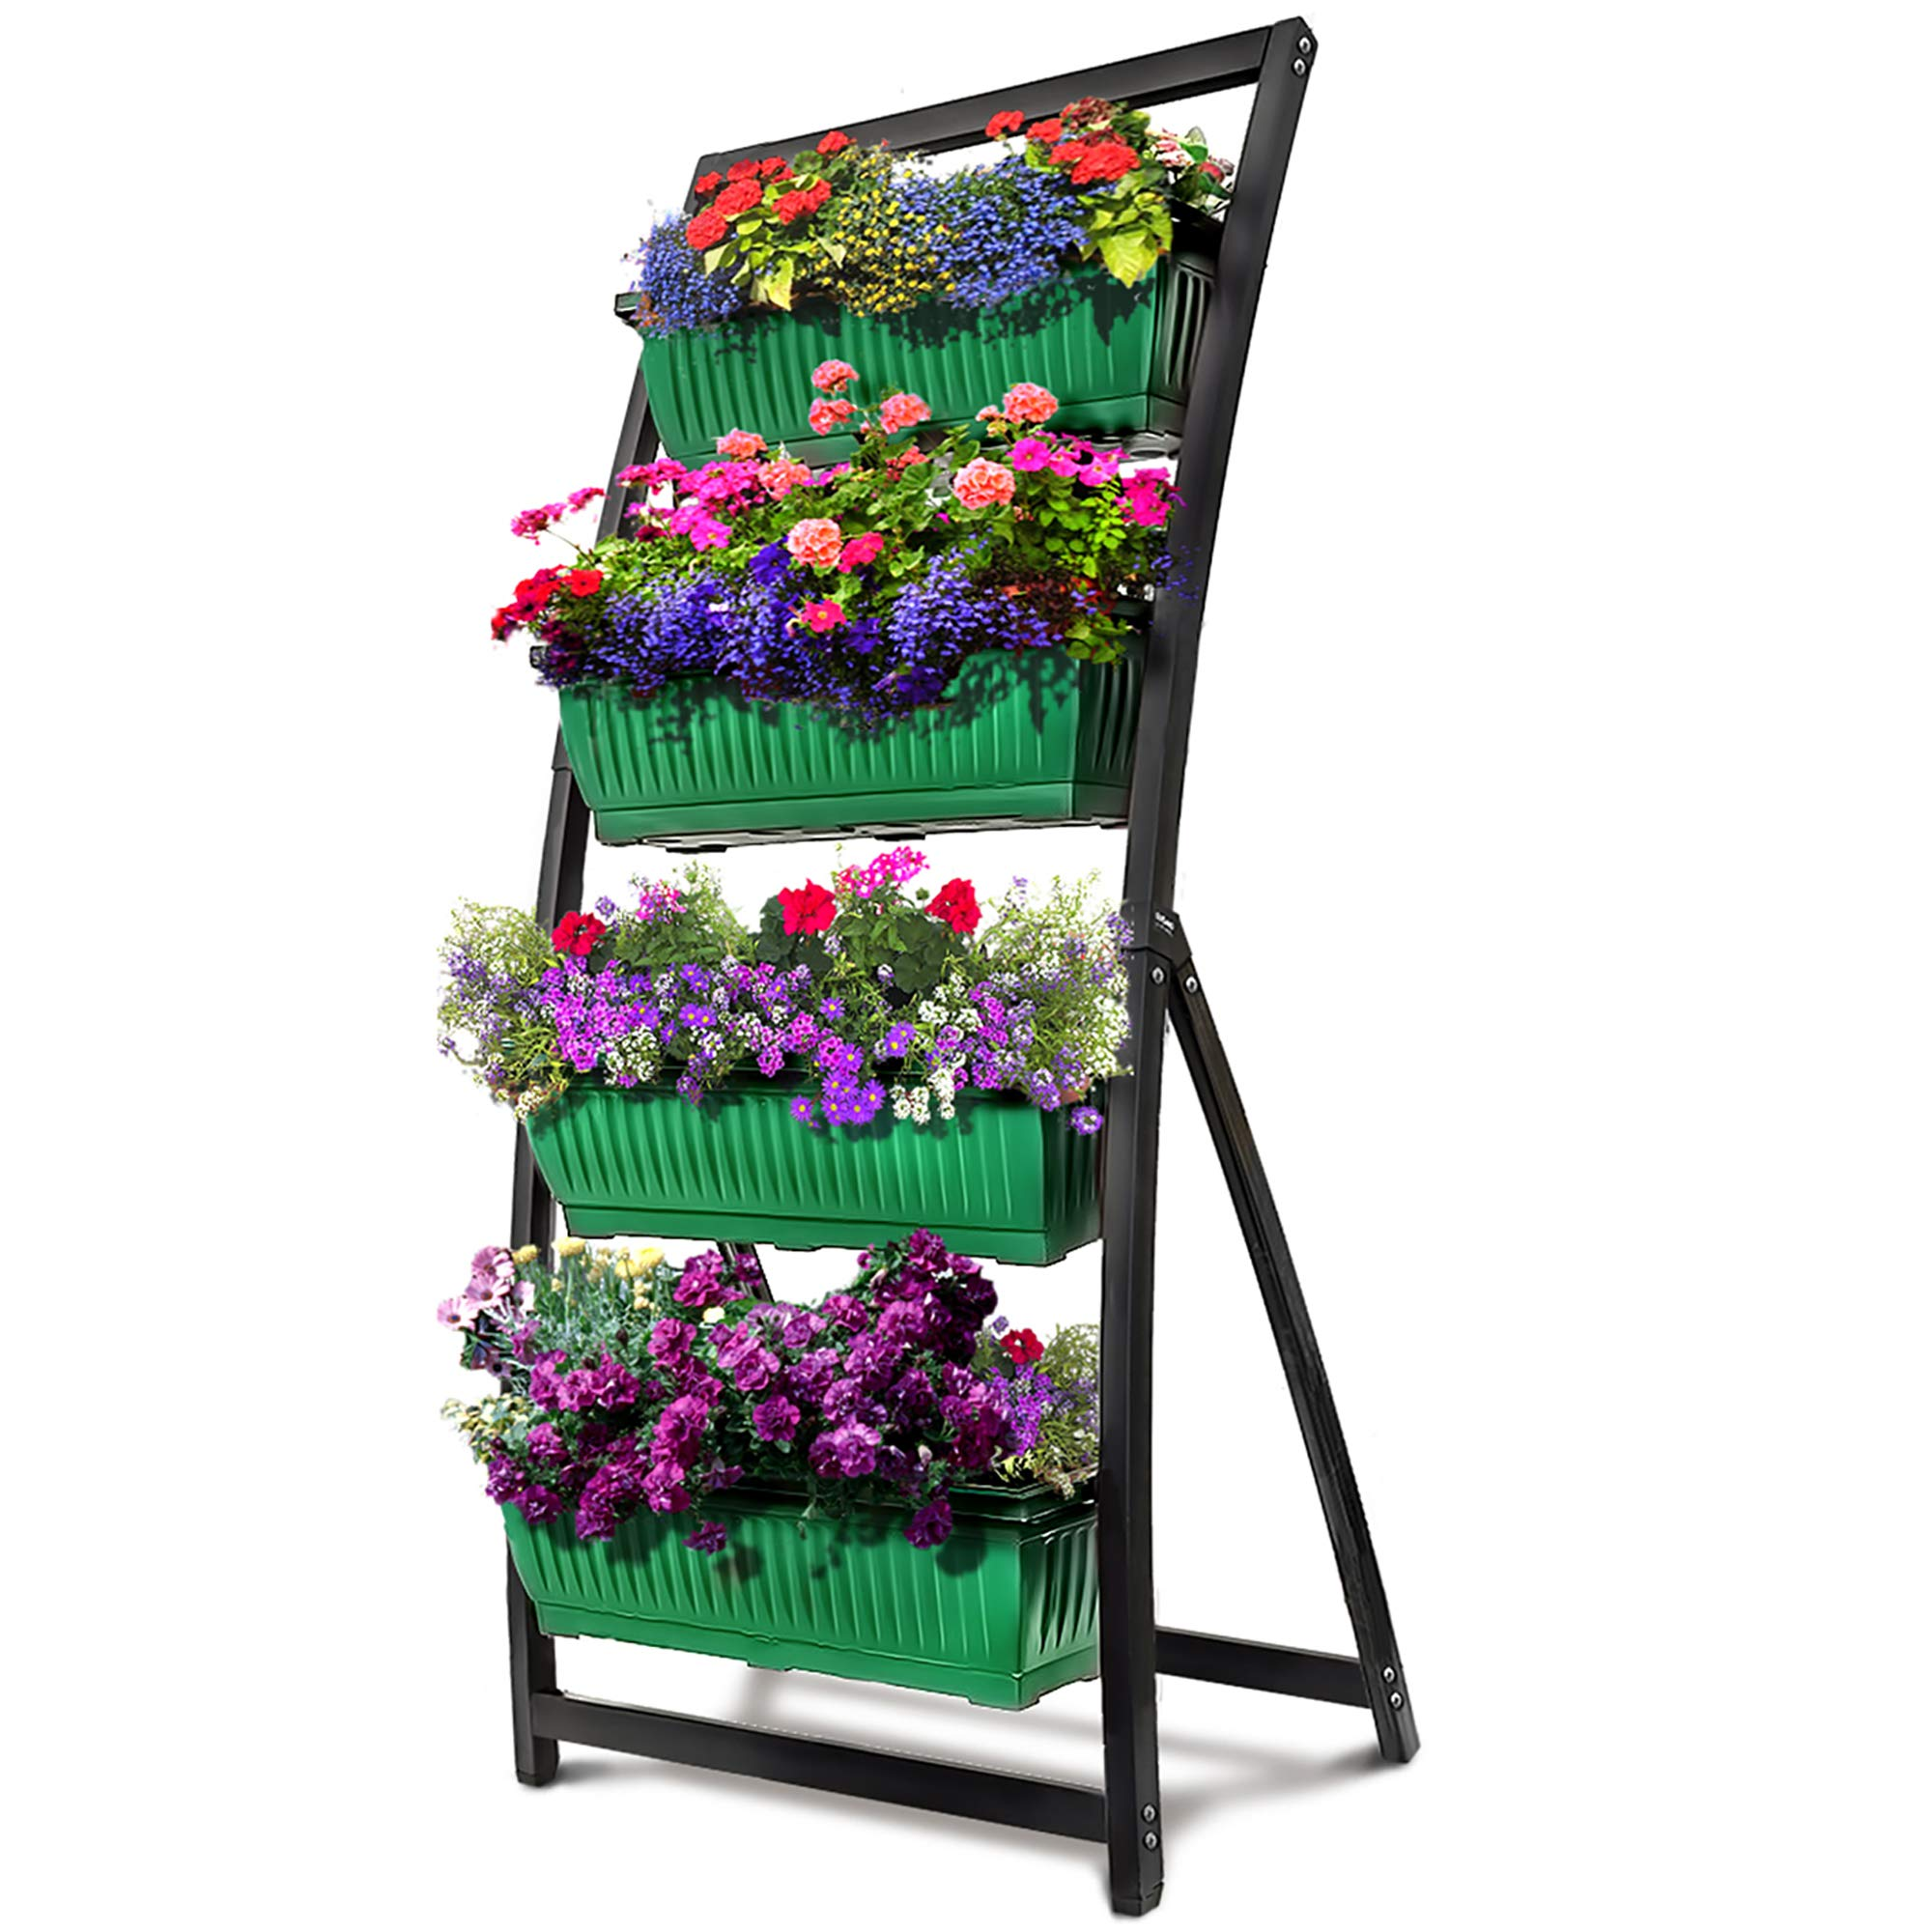 6-Ft Raised Garden Bed - Vertical Garden Freestanding Elevated Planter with 4 Container Boxes - Good for Patio or Balcony Indoor and Outdoor - Cascading Water Drainage (1-Pack/Forest Green) by Outland Living (Image #1)